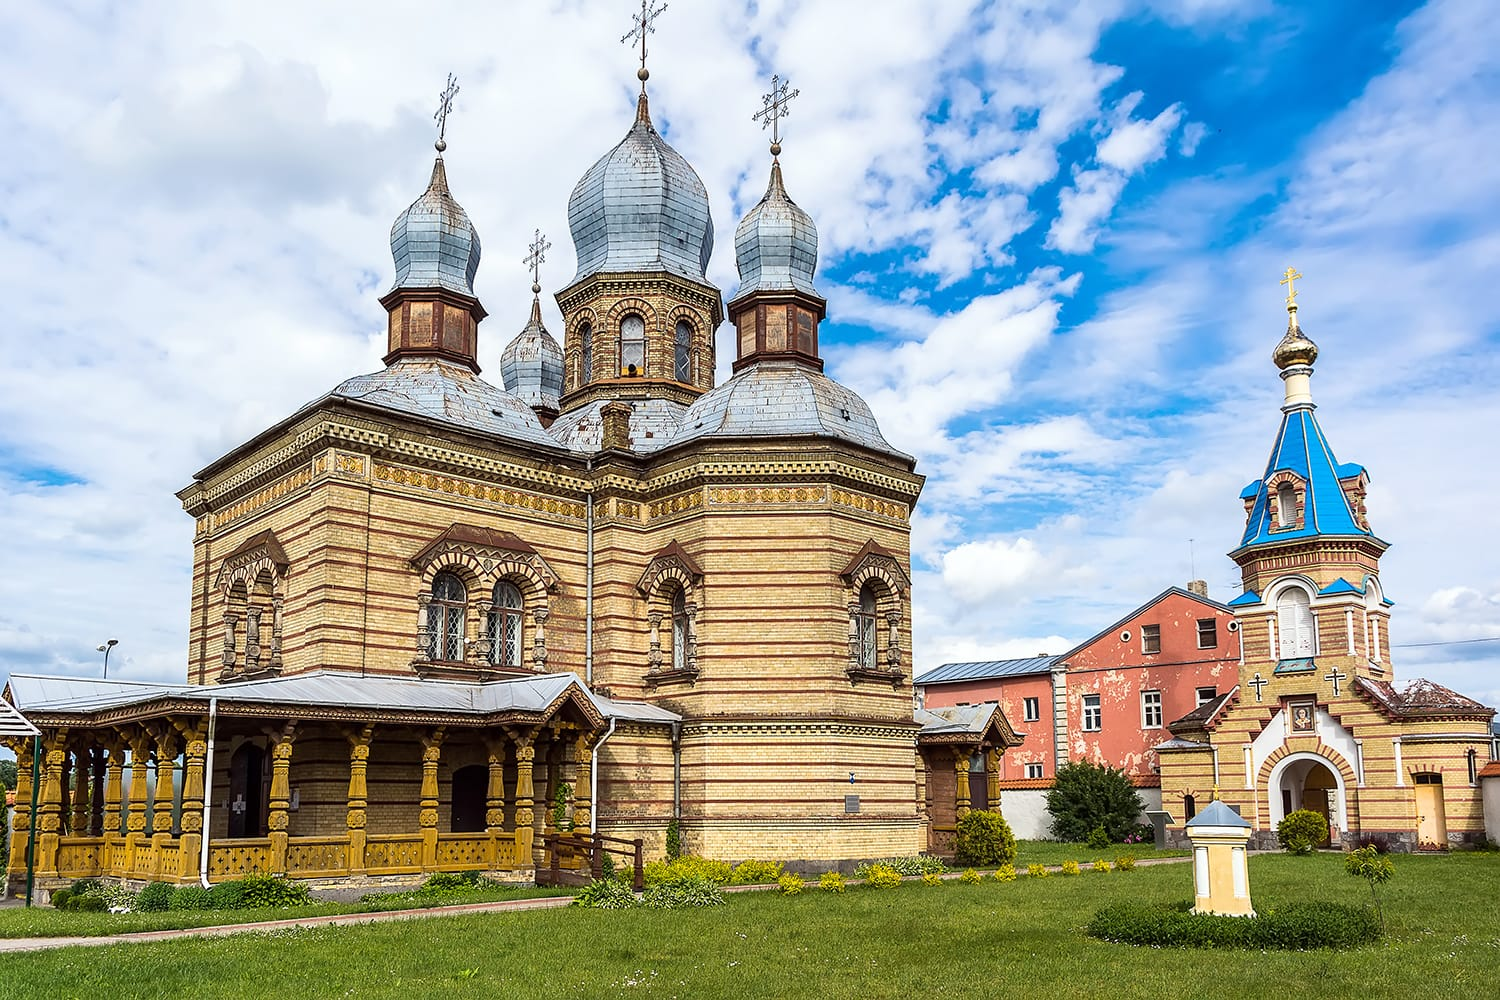 Jekabpils Orthodox Church of The Holy Spirit against bright blue sky. The church was built in the second part of the 19th century in Byzantine style. Its five domes have become a landmark of the city.